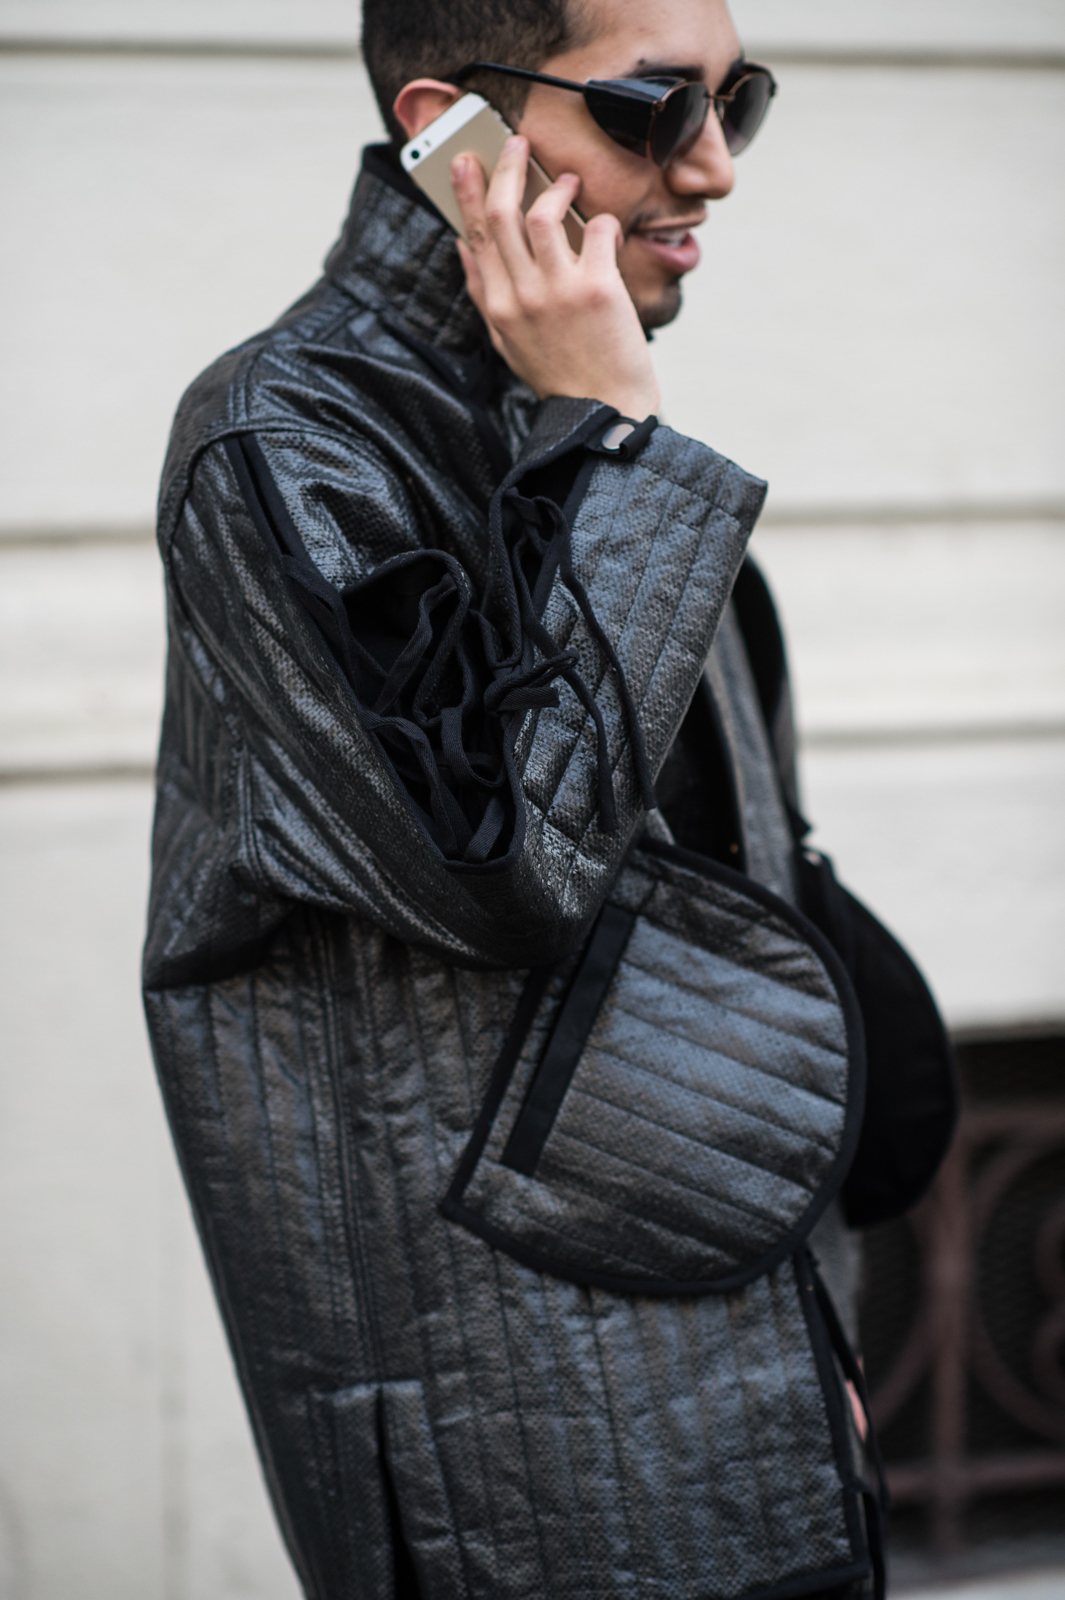 Event Caption: MILAN FASHION WEEK #MFW Street Style A/W 2015 - DAY FOUR